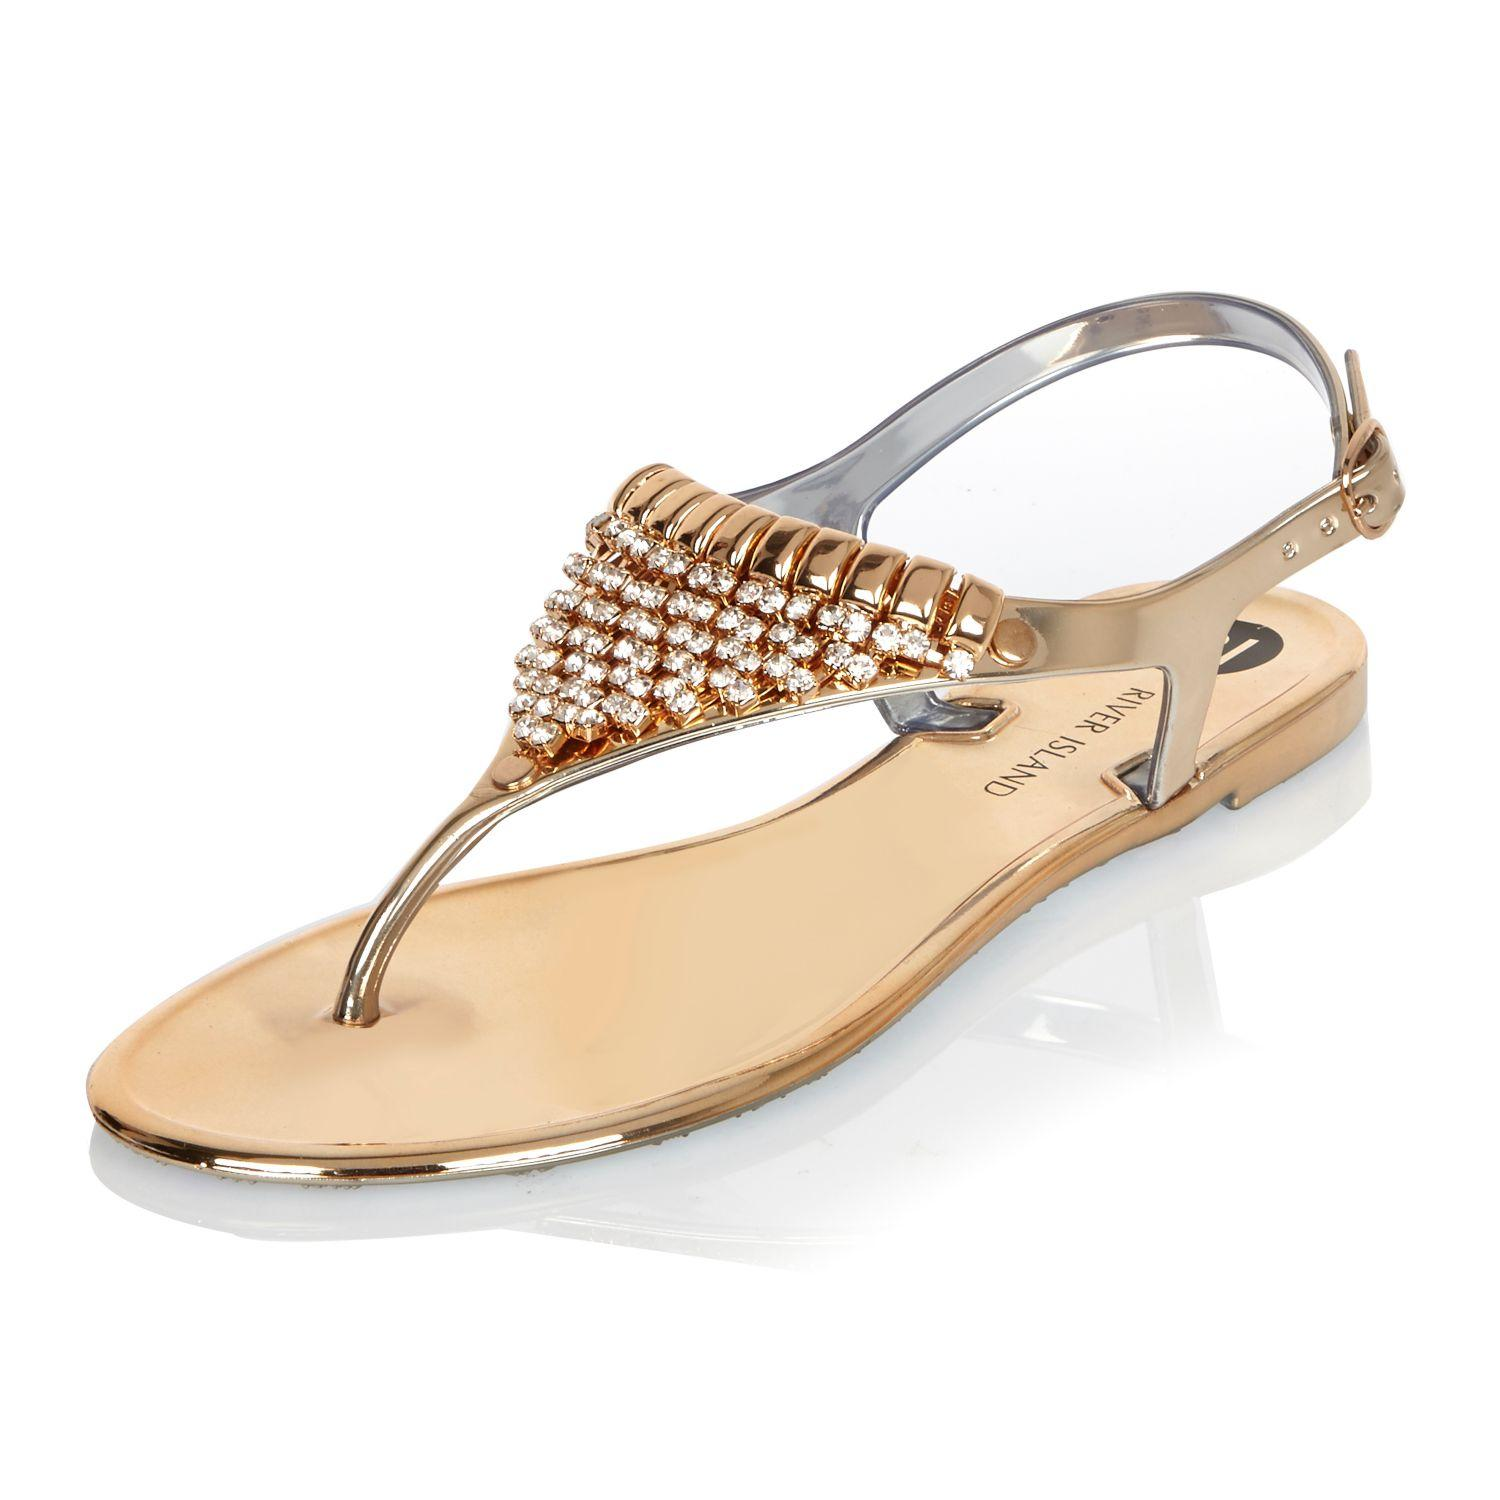 685b05b3396 Lyst - River Island Gold Embellished Jelly Sandals in Metallic